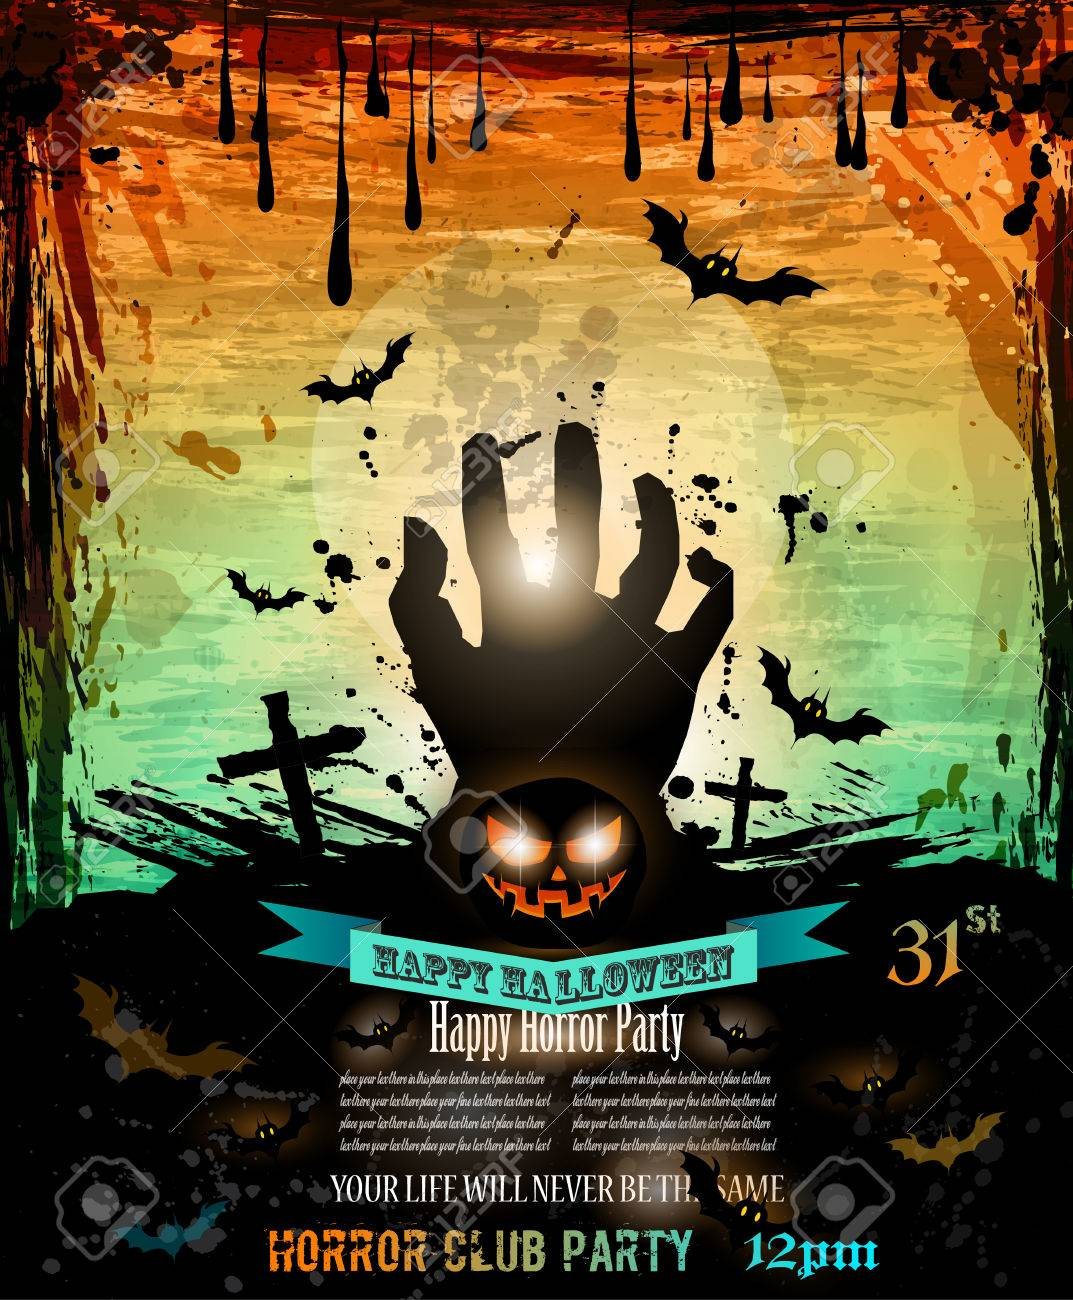 halloween party flyer with creepy colorful elements with a black